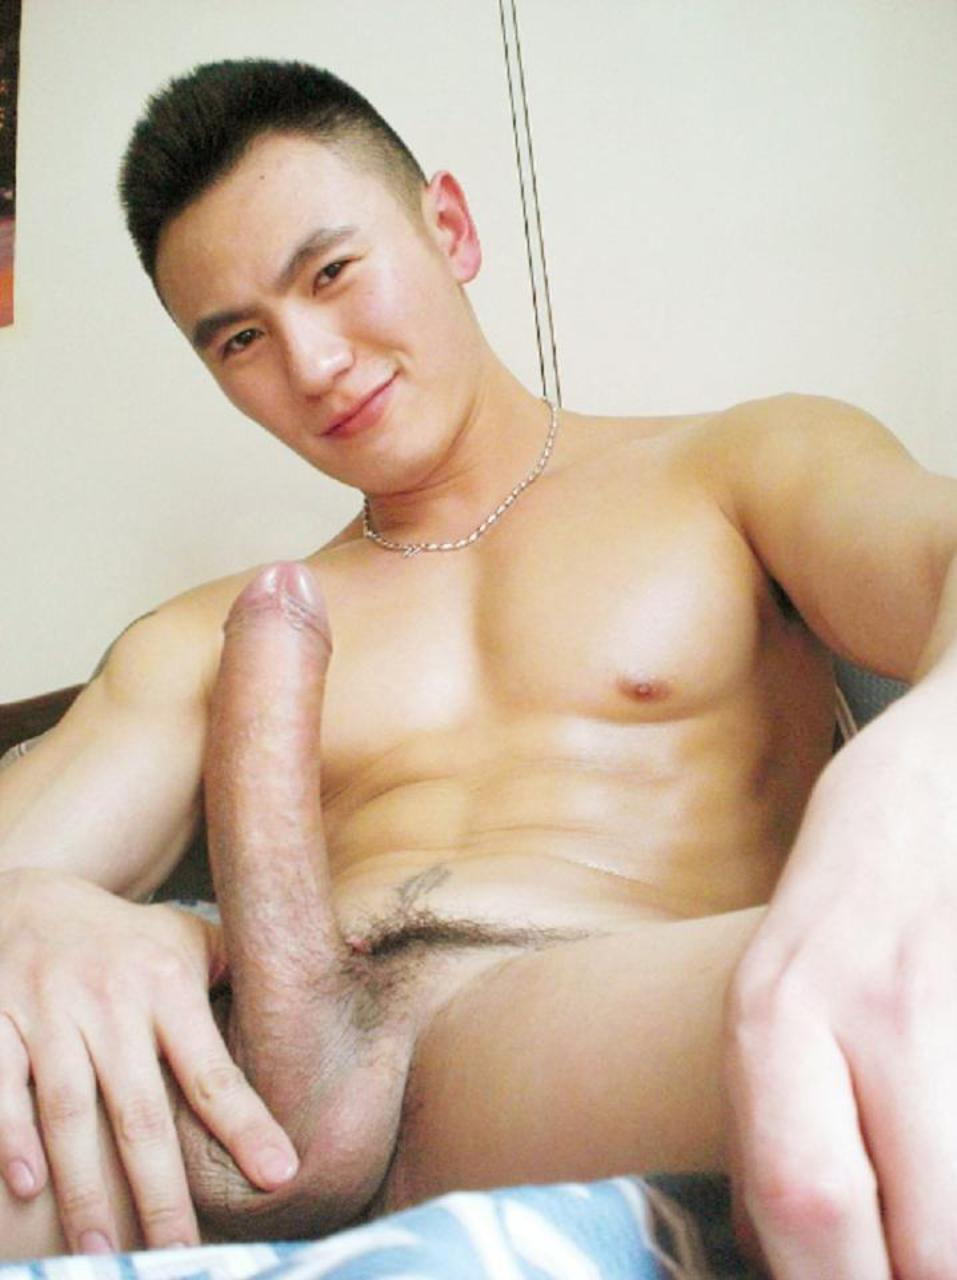 Photos Of Naked Asian Men Muscle Threesome Larvinmusic